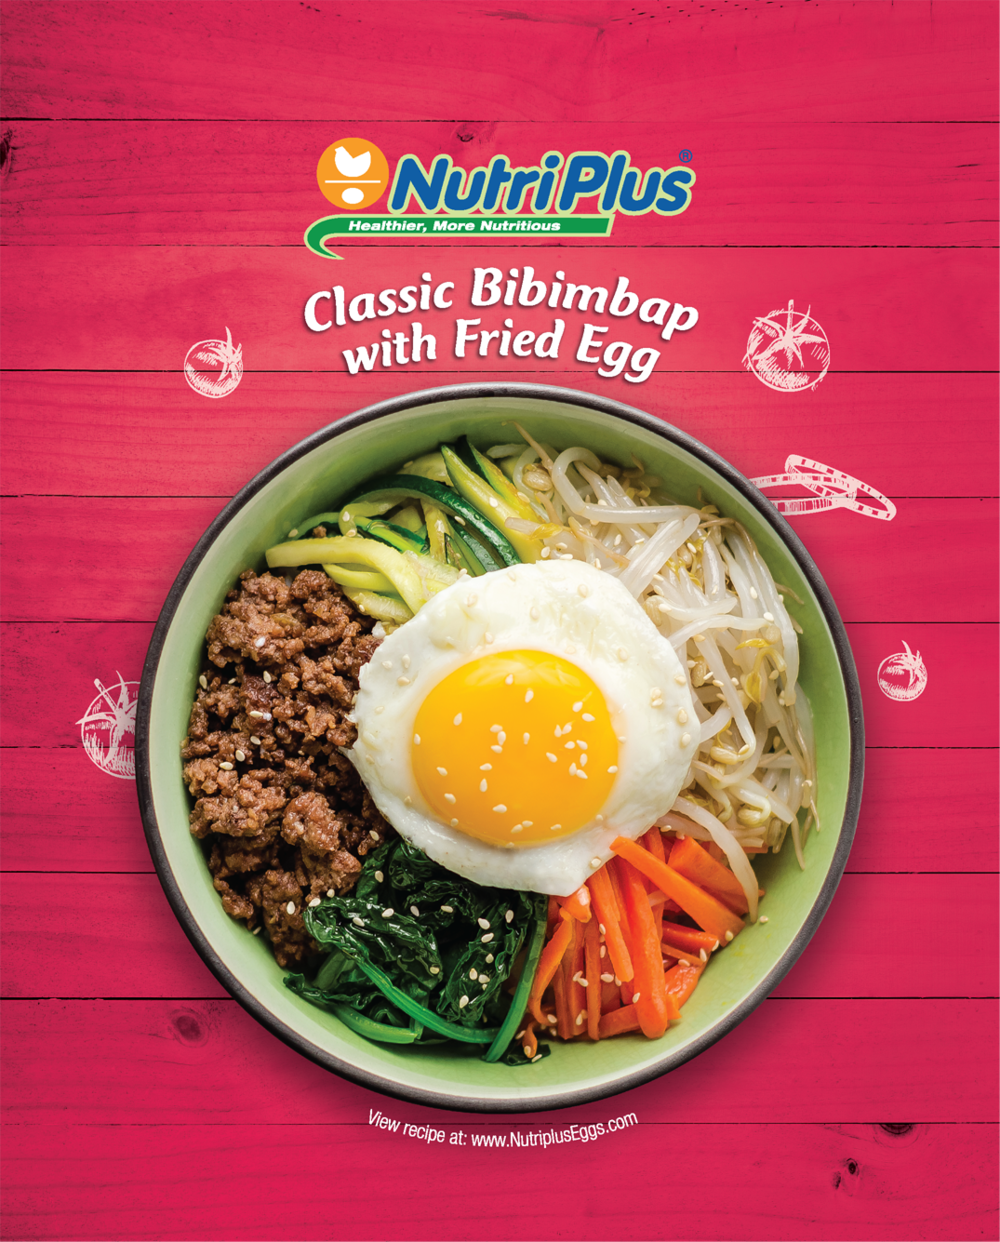 CLASSIC BIBIMBAP WITH FRIED EGG